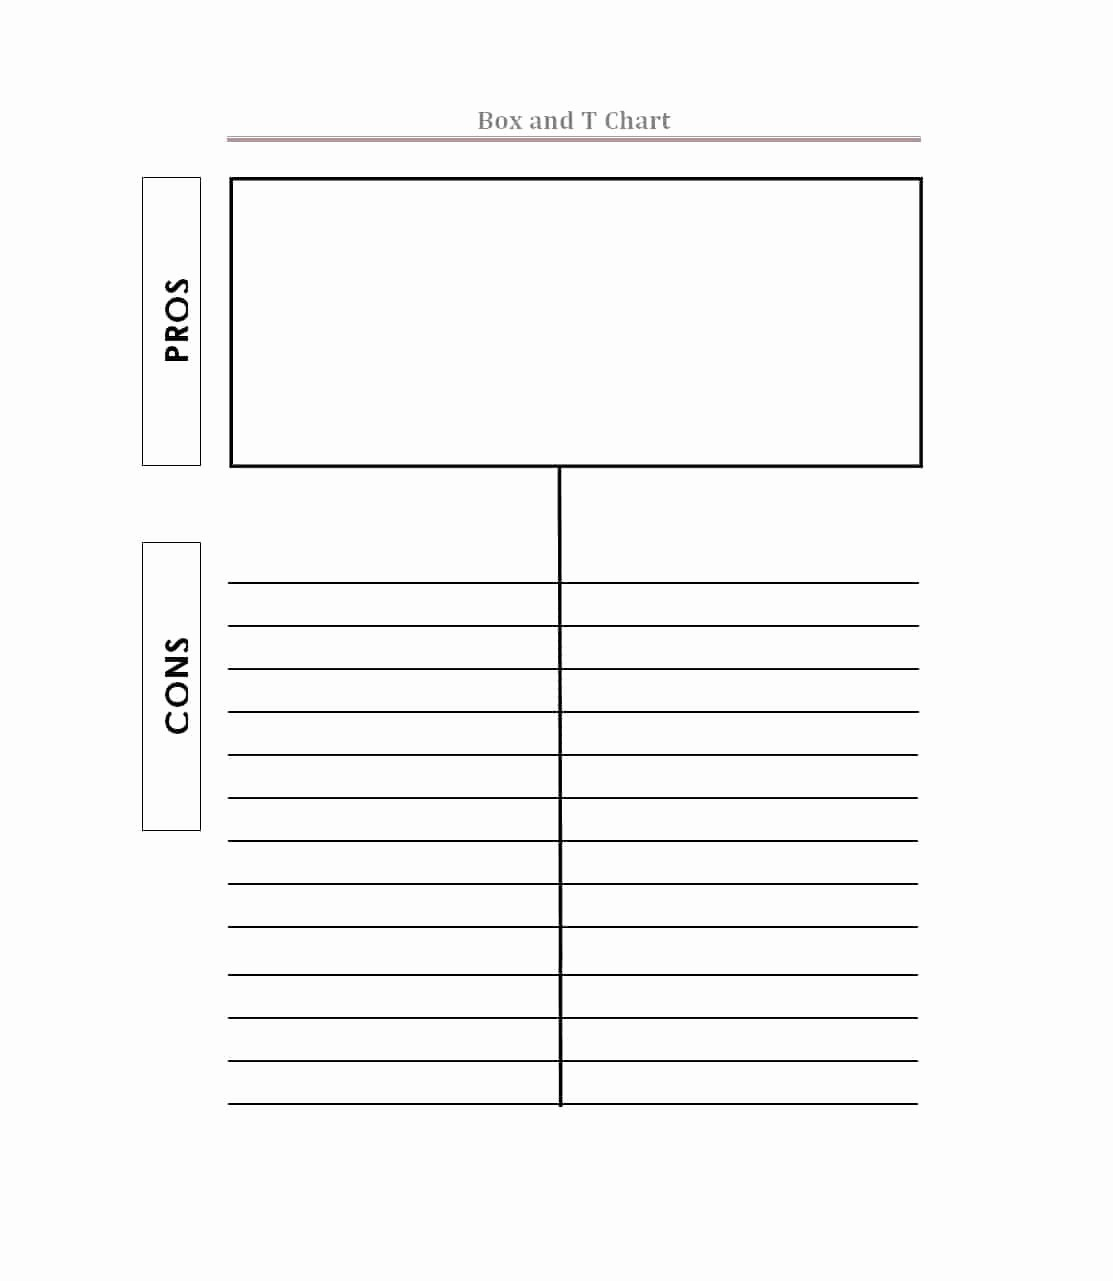 Pro and Con List Template Fresh Pros and Cons List Templates